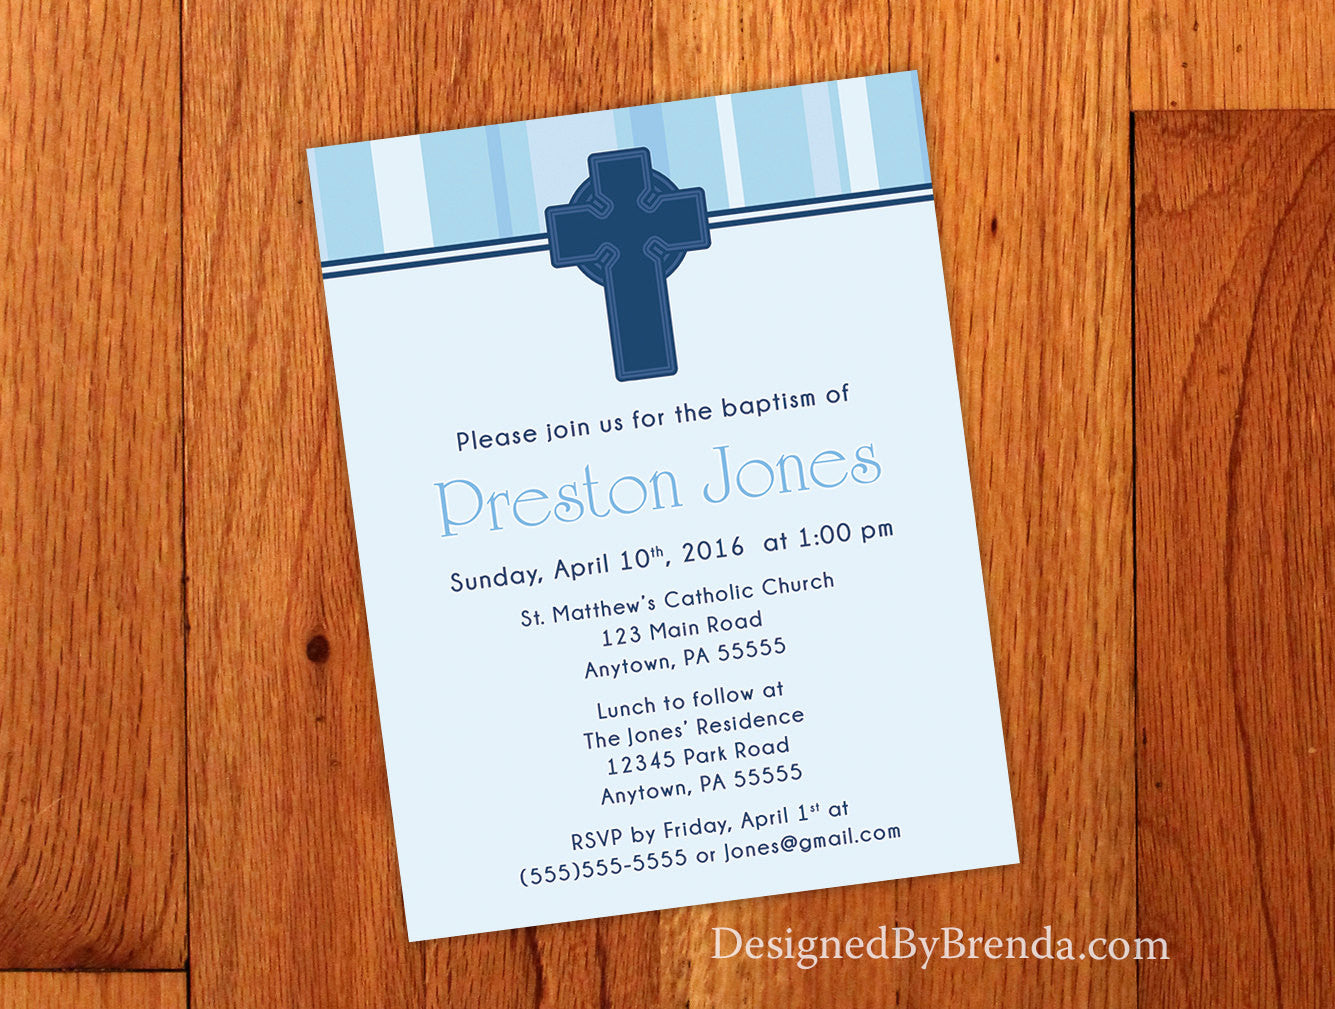 Shades of Blue Invitation with Cross - Baptism, First Communion or Confirmation